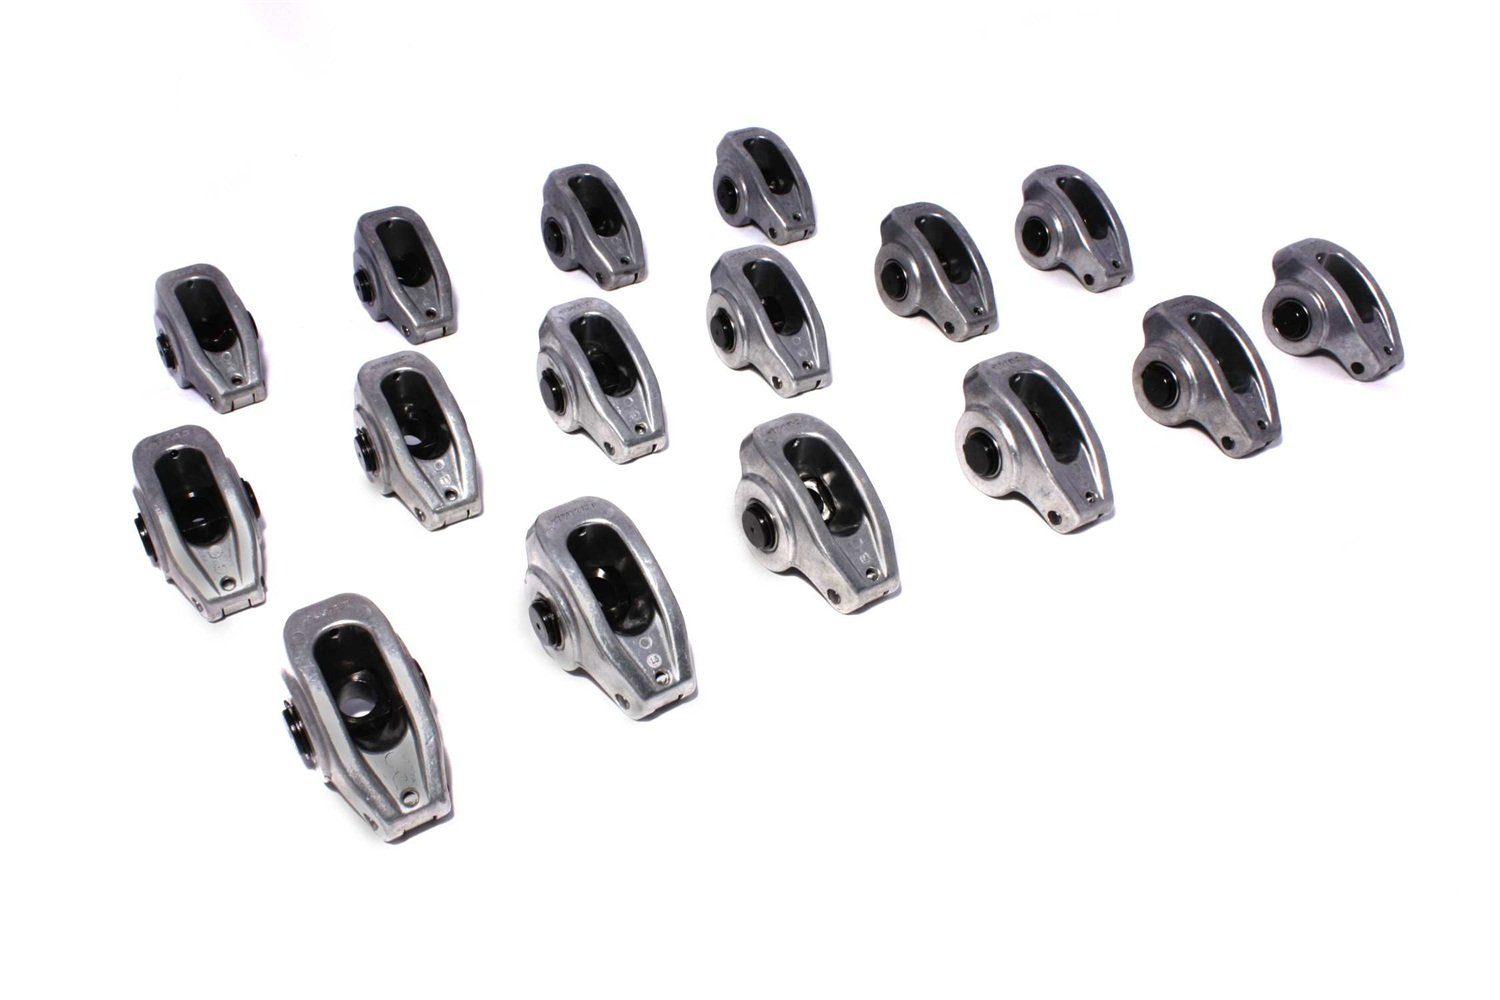 COMP Cams 17005-16 High Energy 7/16' Stud Diameter Die Cast Aluminum Roller Rocker Arm for Small Block Chevrolet